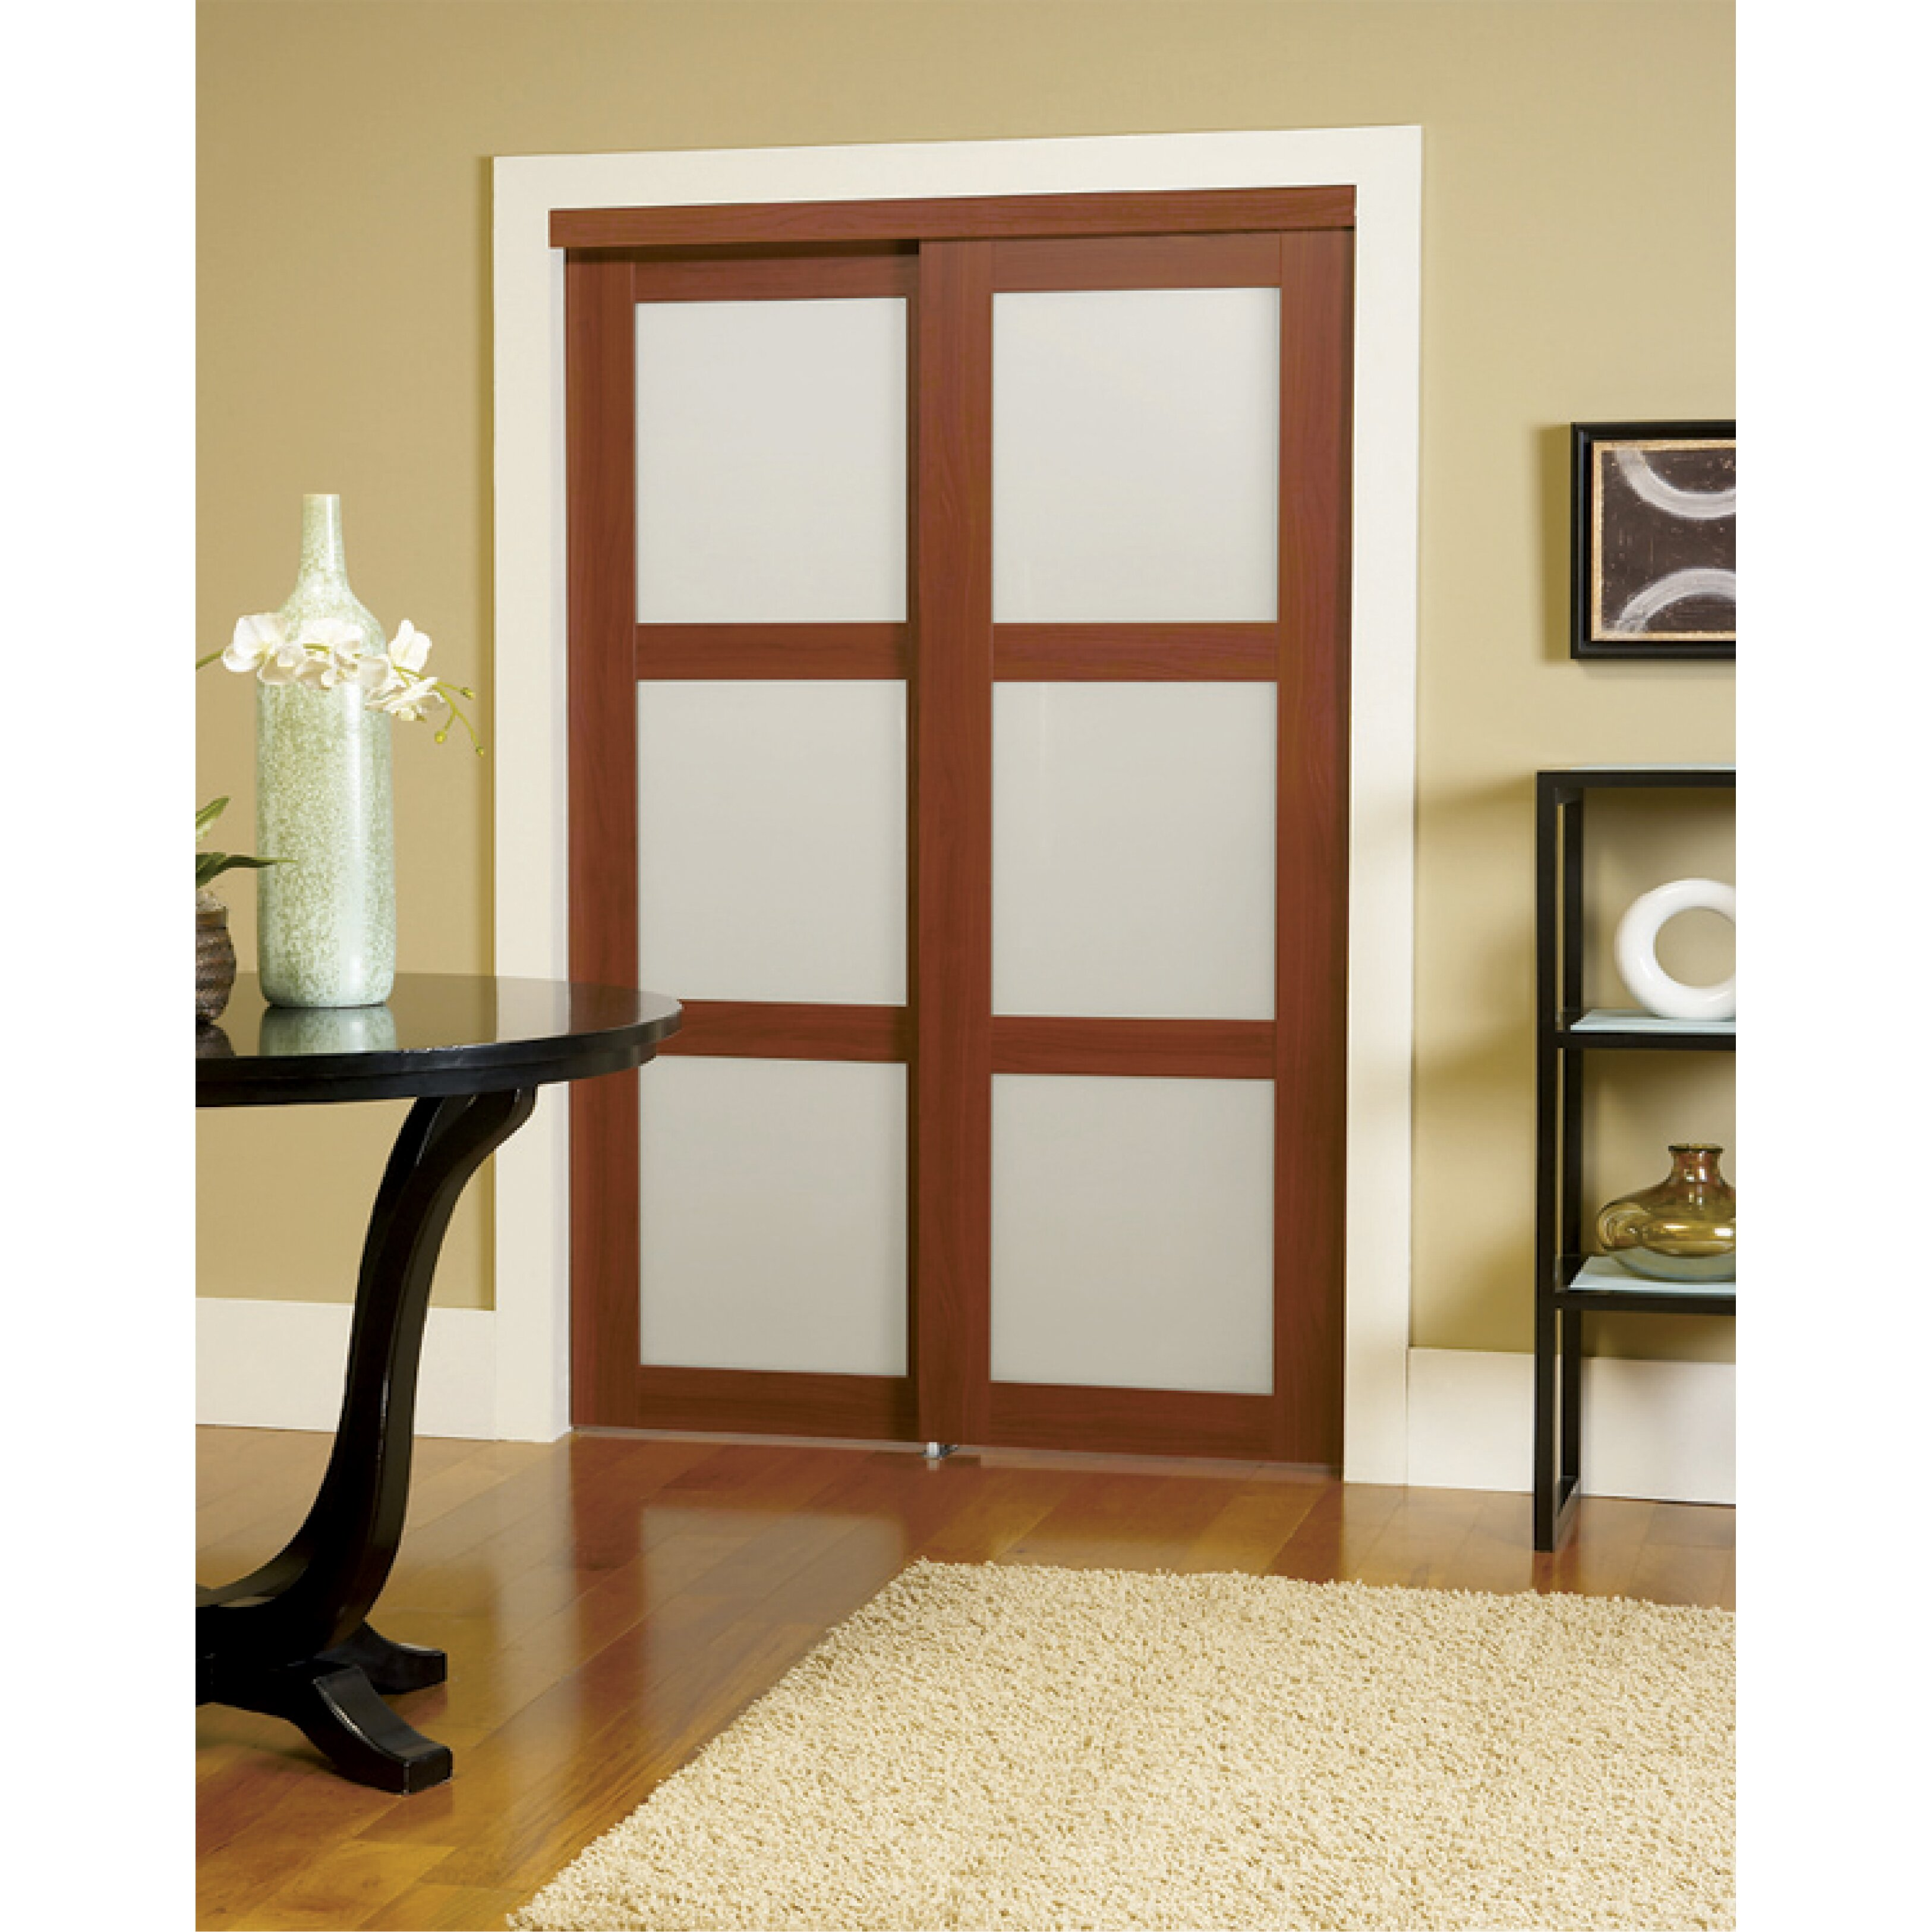 20 Interior Door Choice Image Glass Door Interior Doors Patio 20 Inch  Interior Closet Door Btcafo